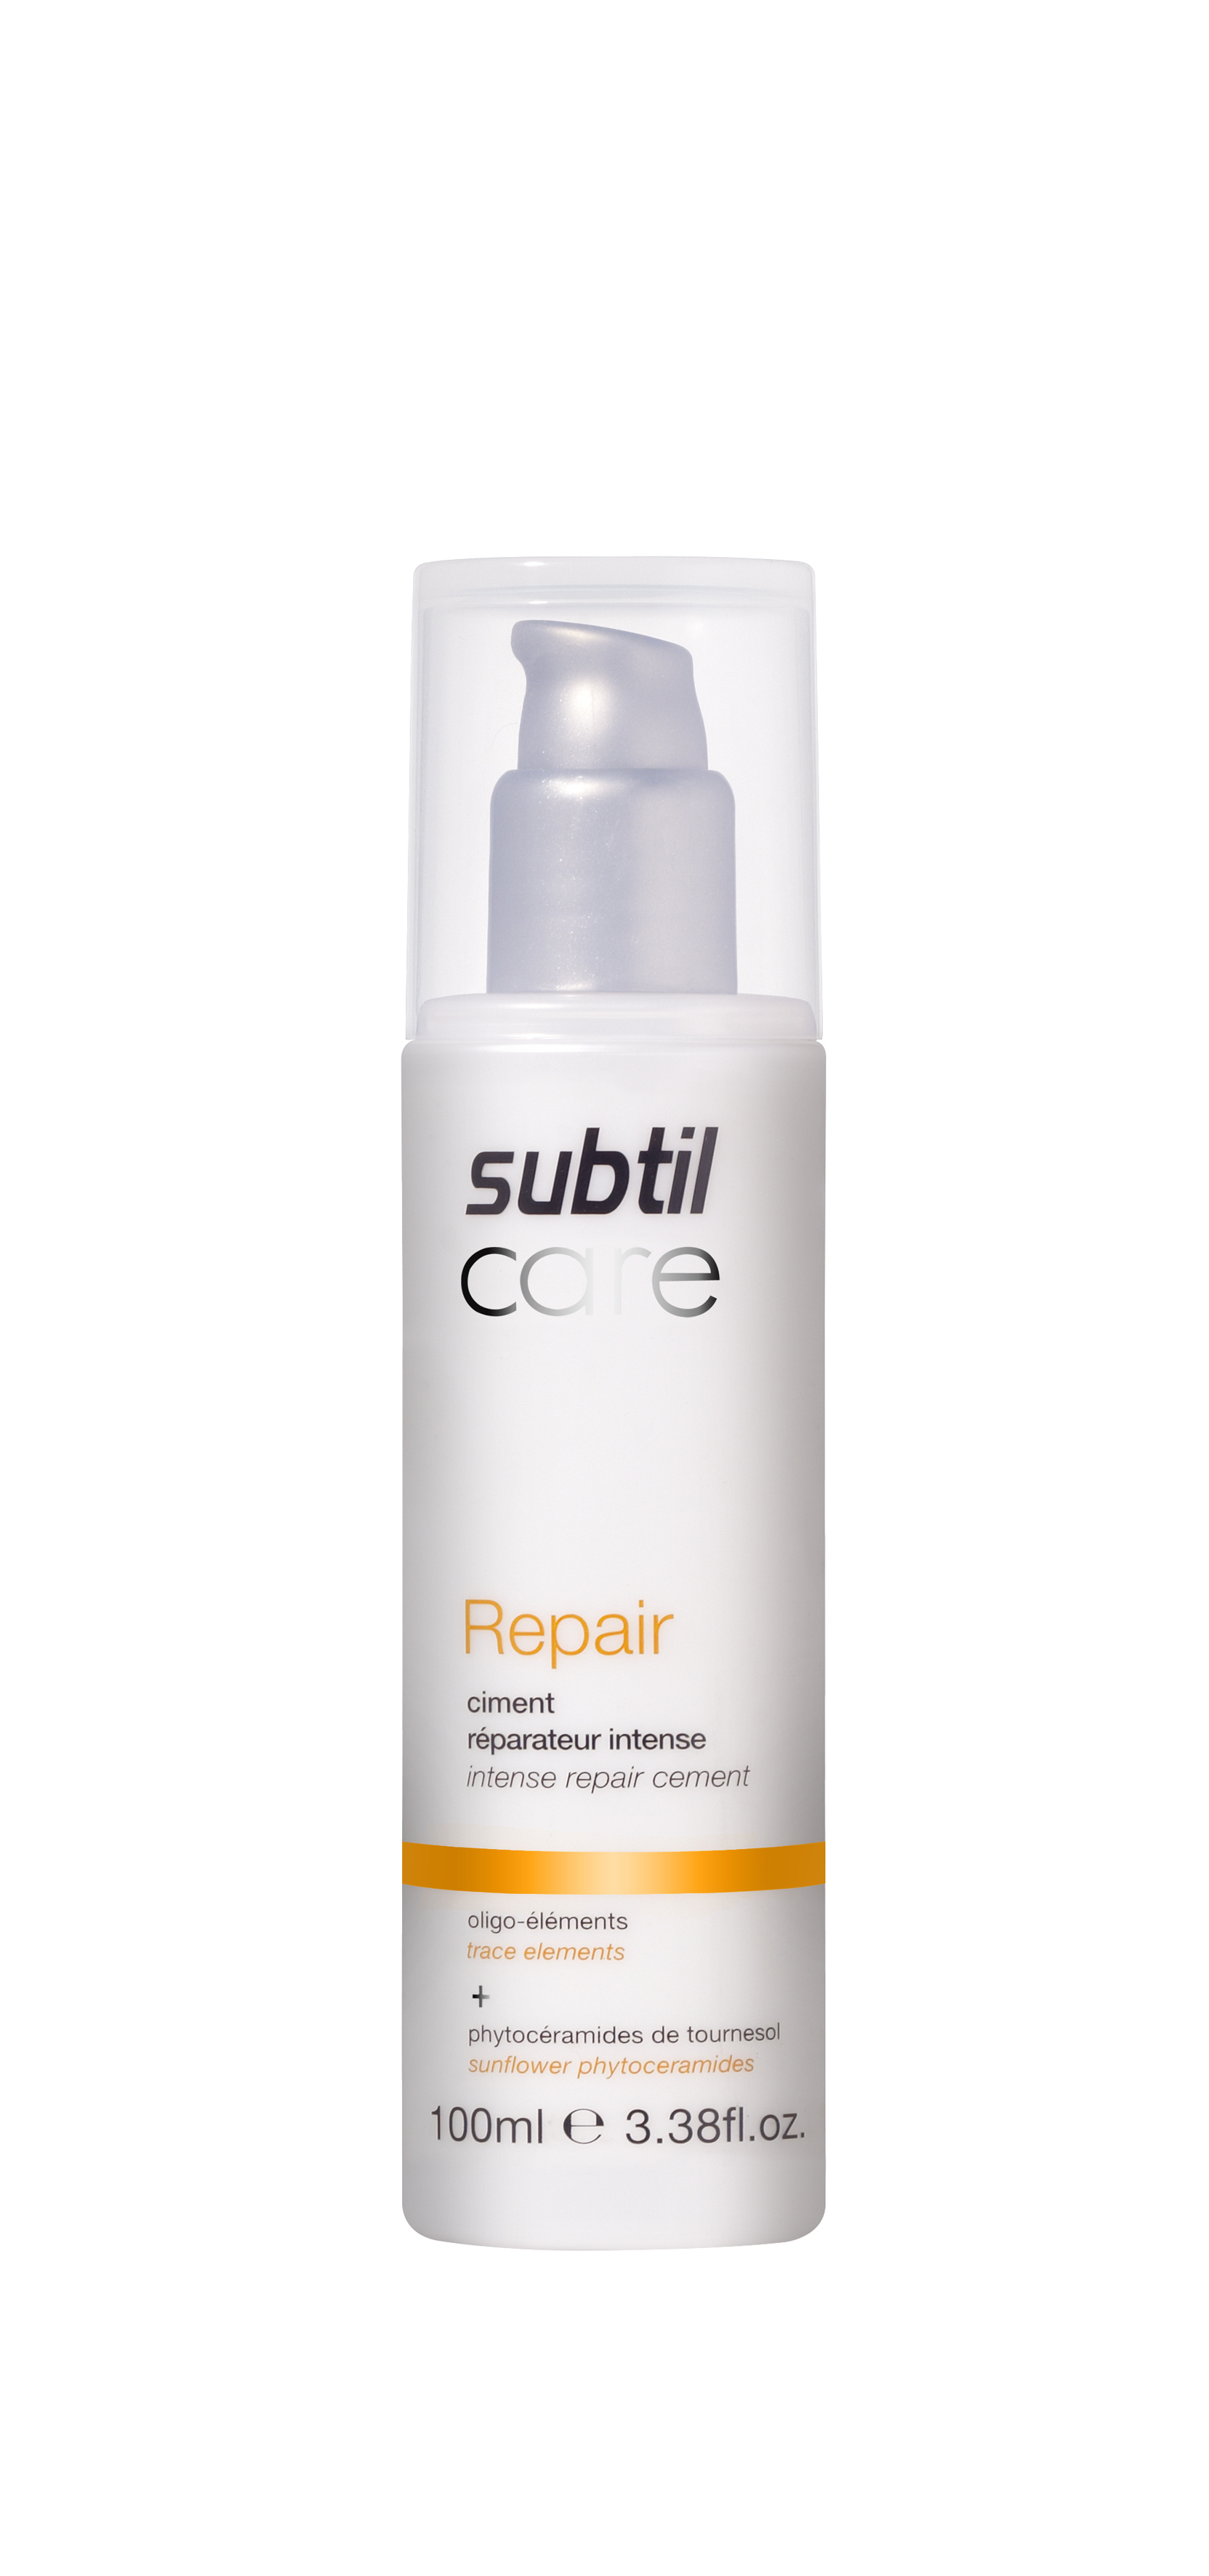 Subtil Care Repair ciment réparateur intense 100 ml